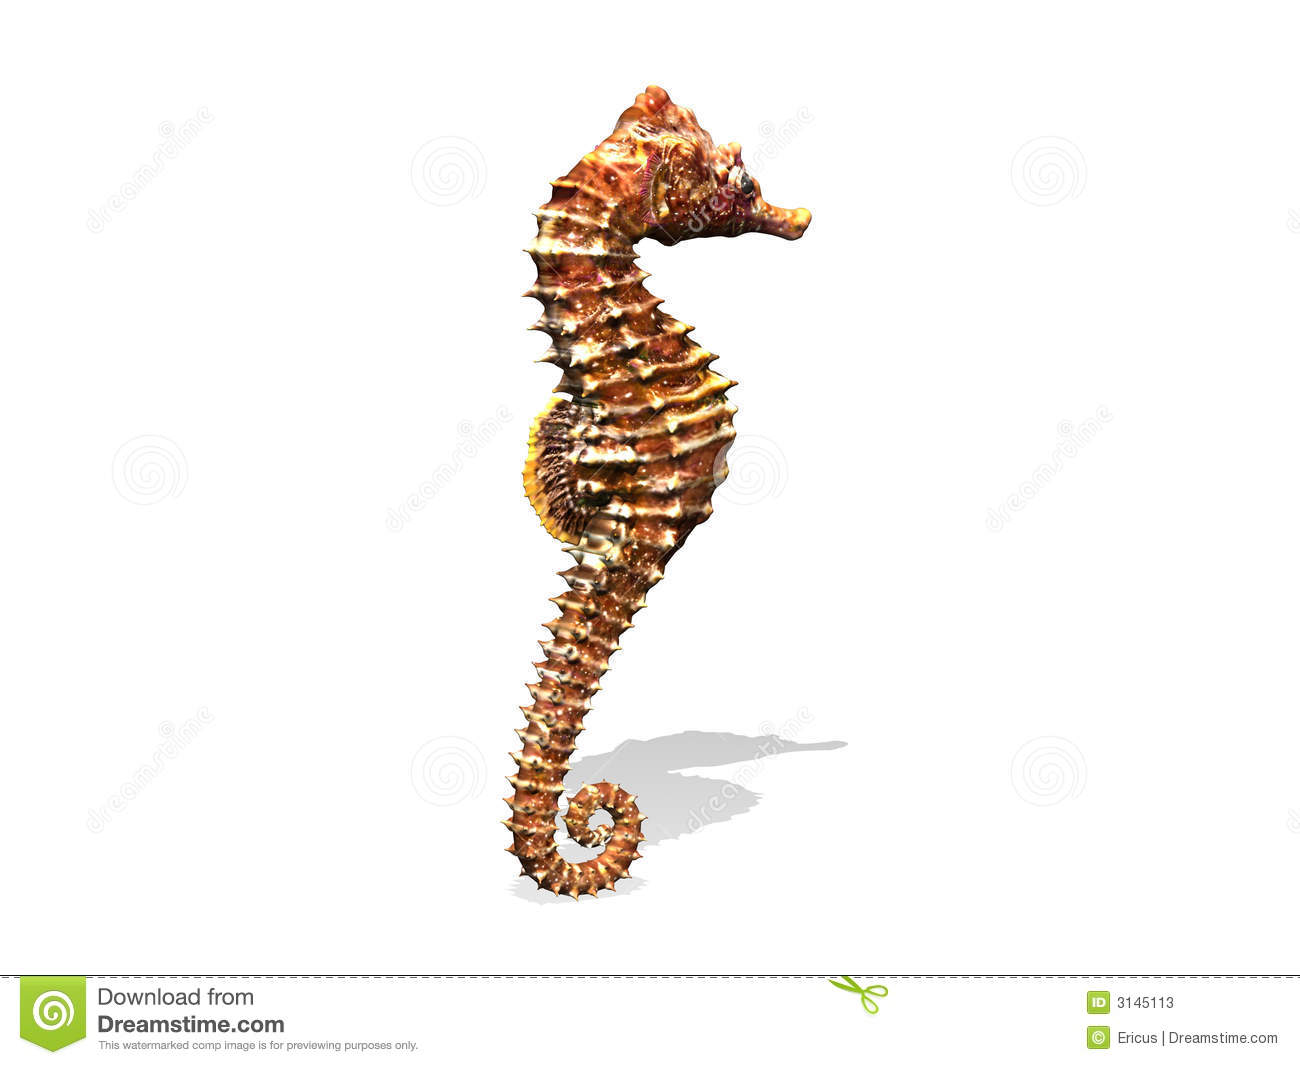 Seahorse Stock Illustration. Illustration Of Seahorse